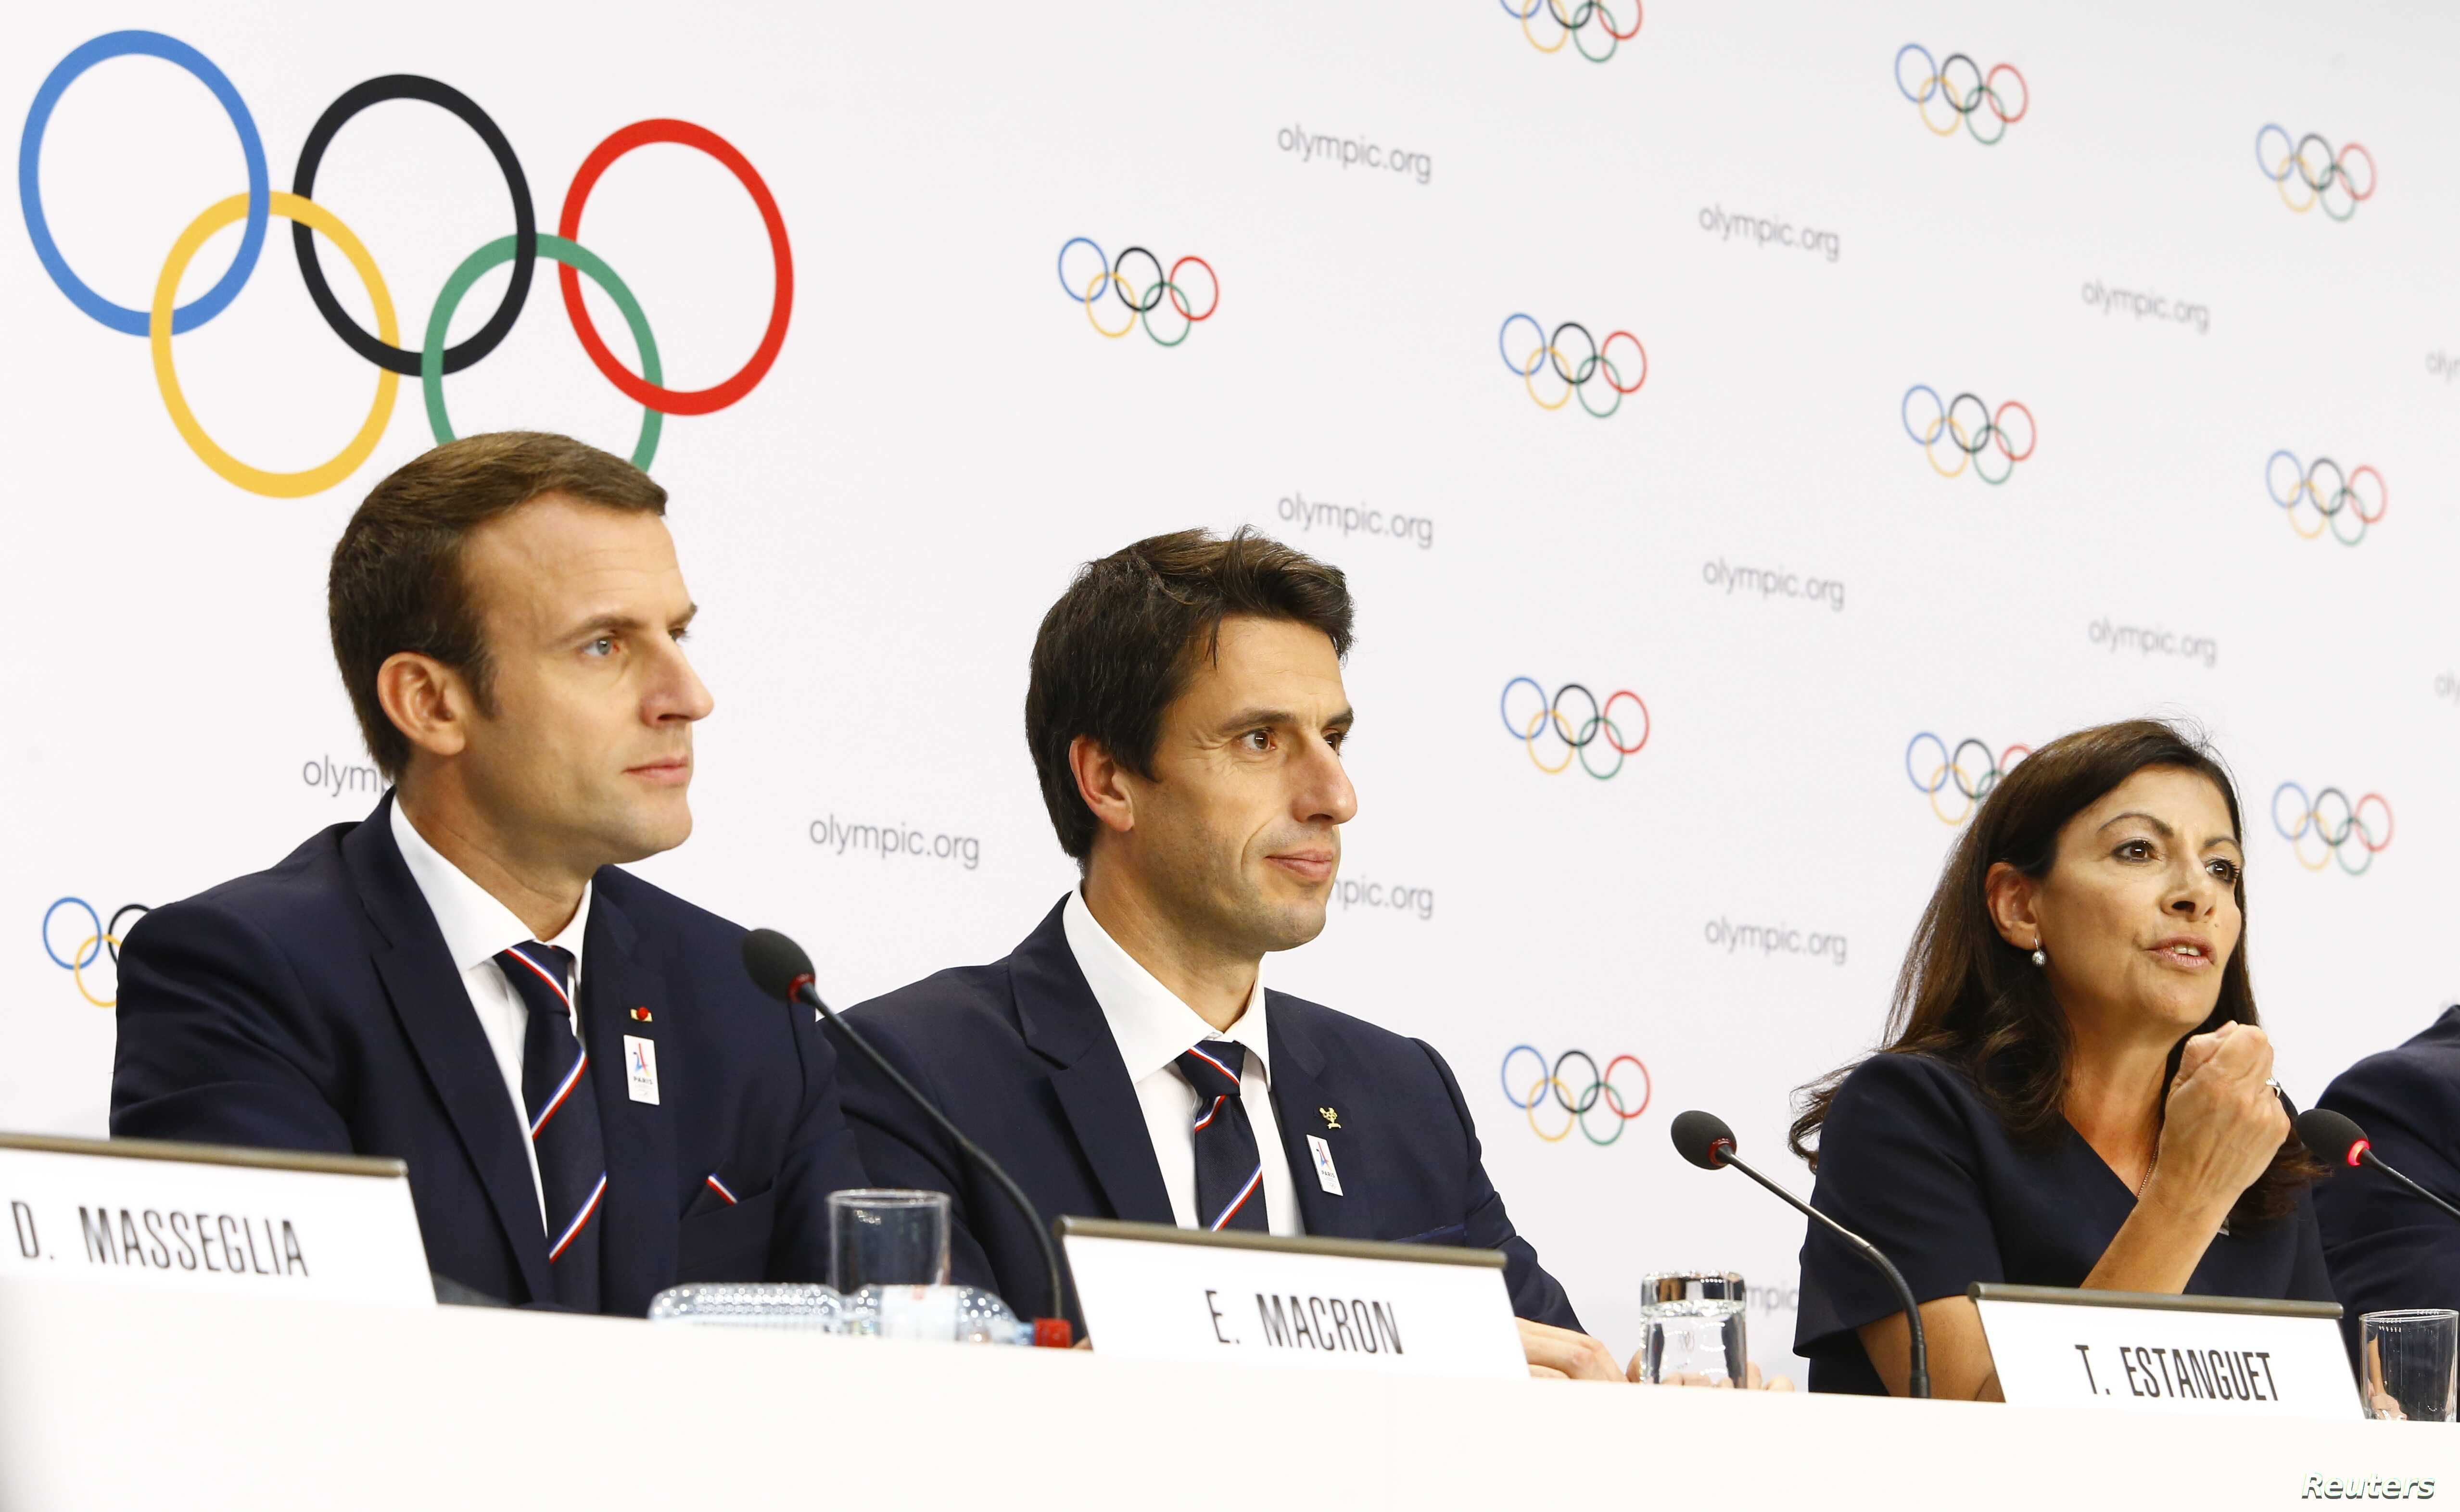 French President Emmanuel Macron, Paris mayor Anne Hidalgo and French slalom canoeist Tony Estanguet attend the briefing of 2024 Olympic Games candidate cities Paris and Los Angeles ahead of final election of 2024 Olympic host city, in Lausanne, Swit...